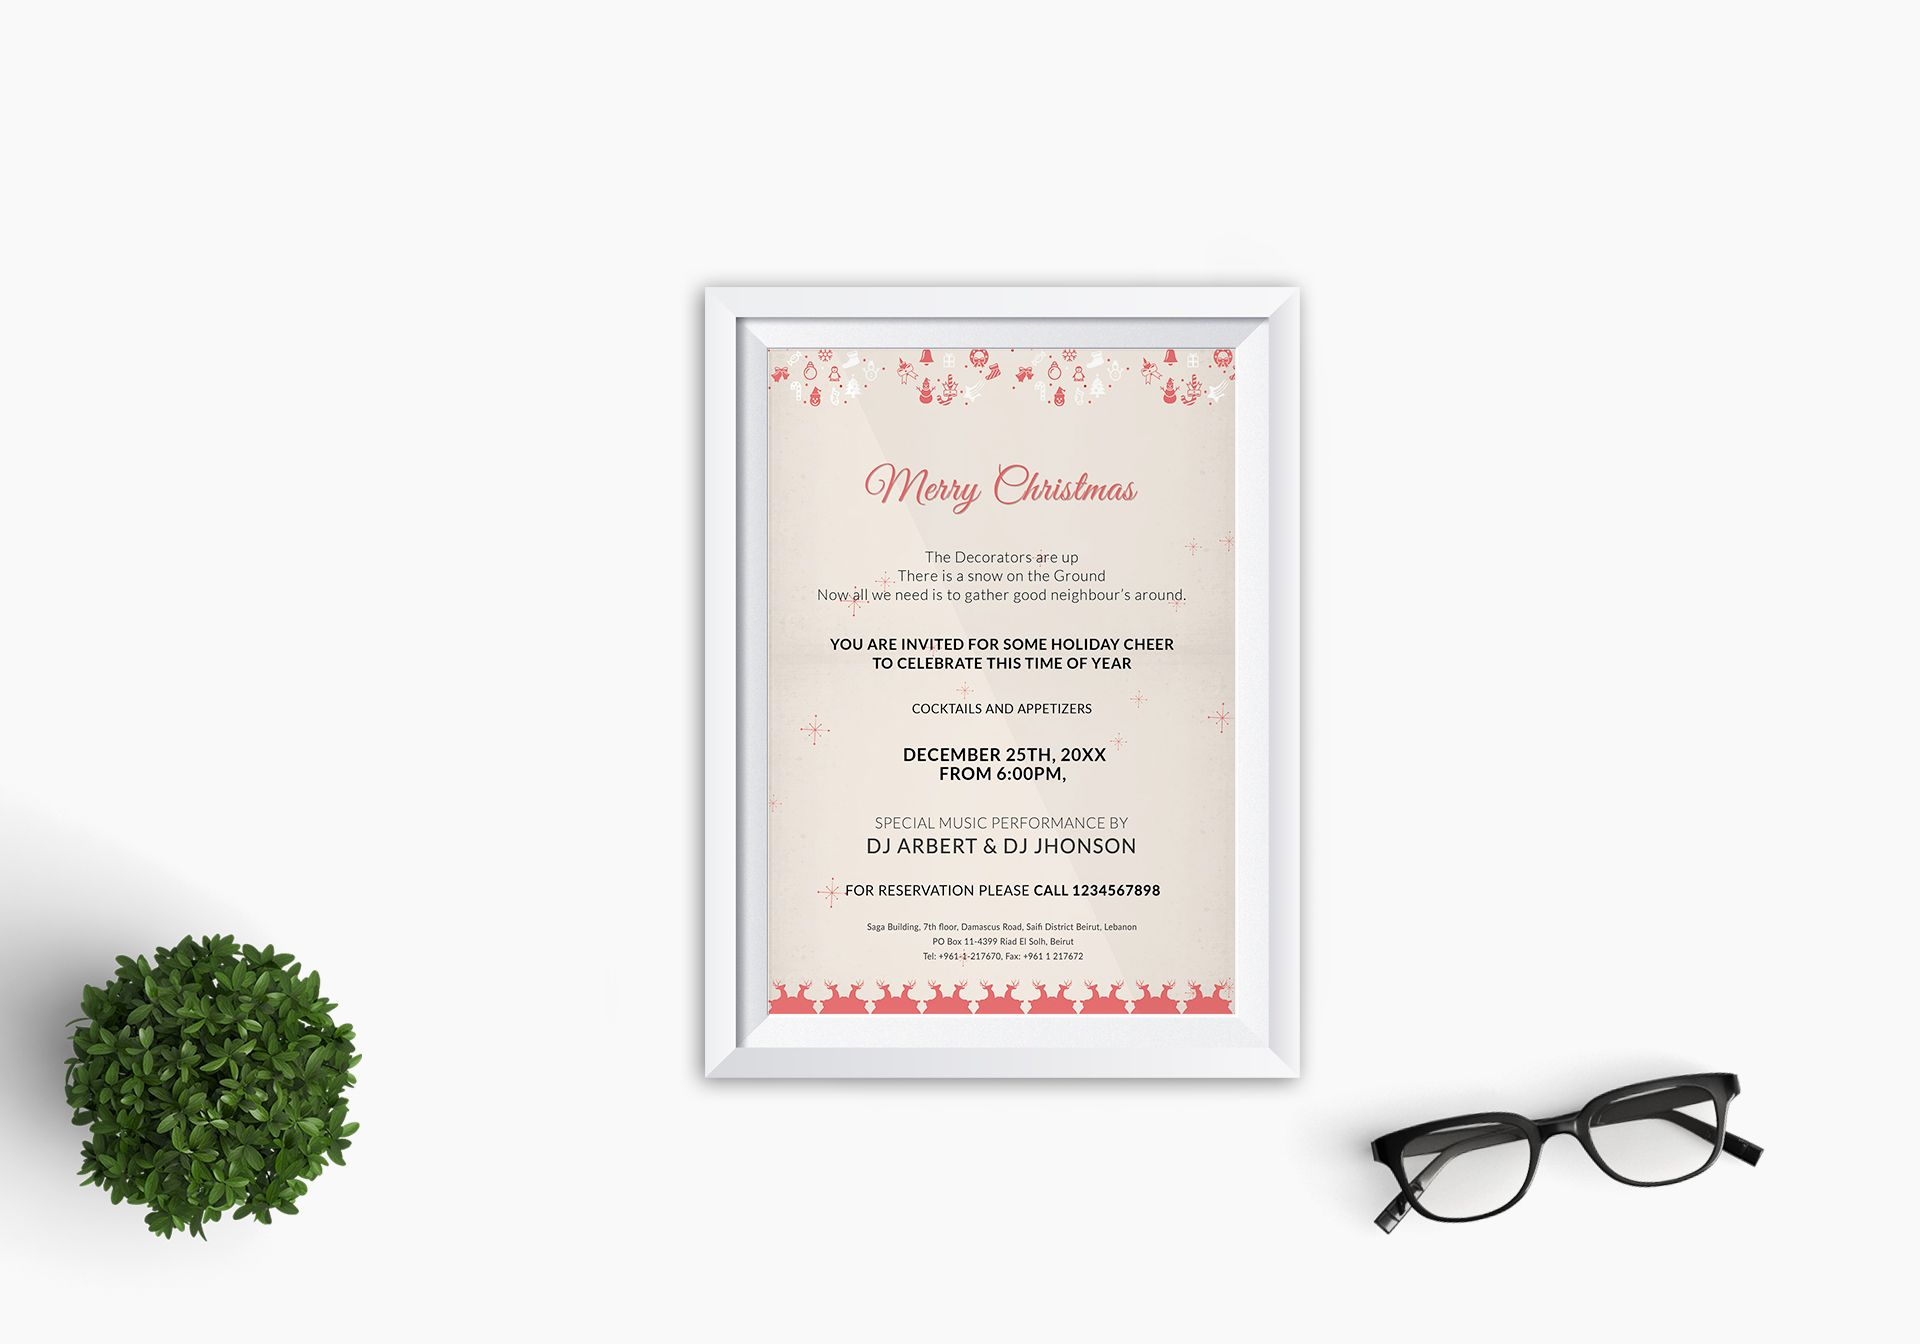 Christmas Glow Hanging Stars Party Invitation Template